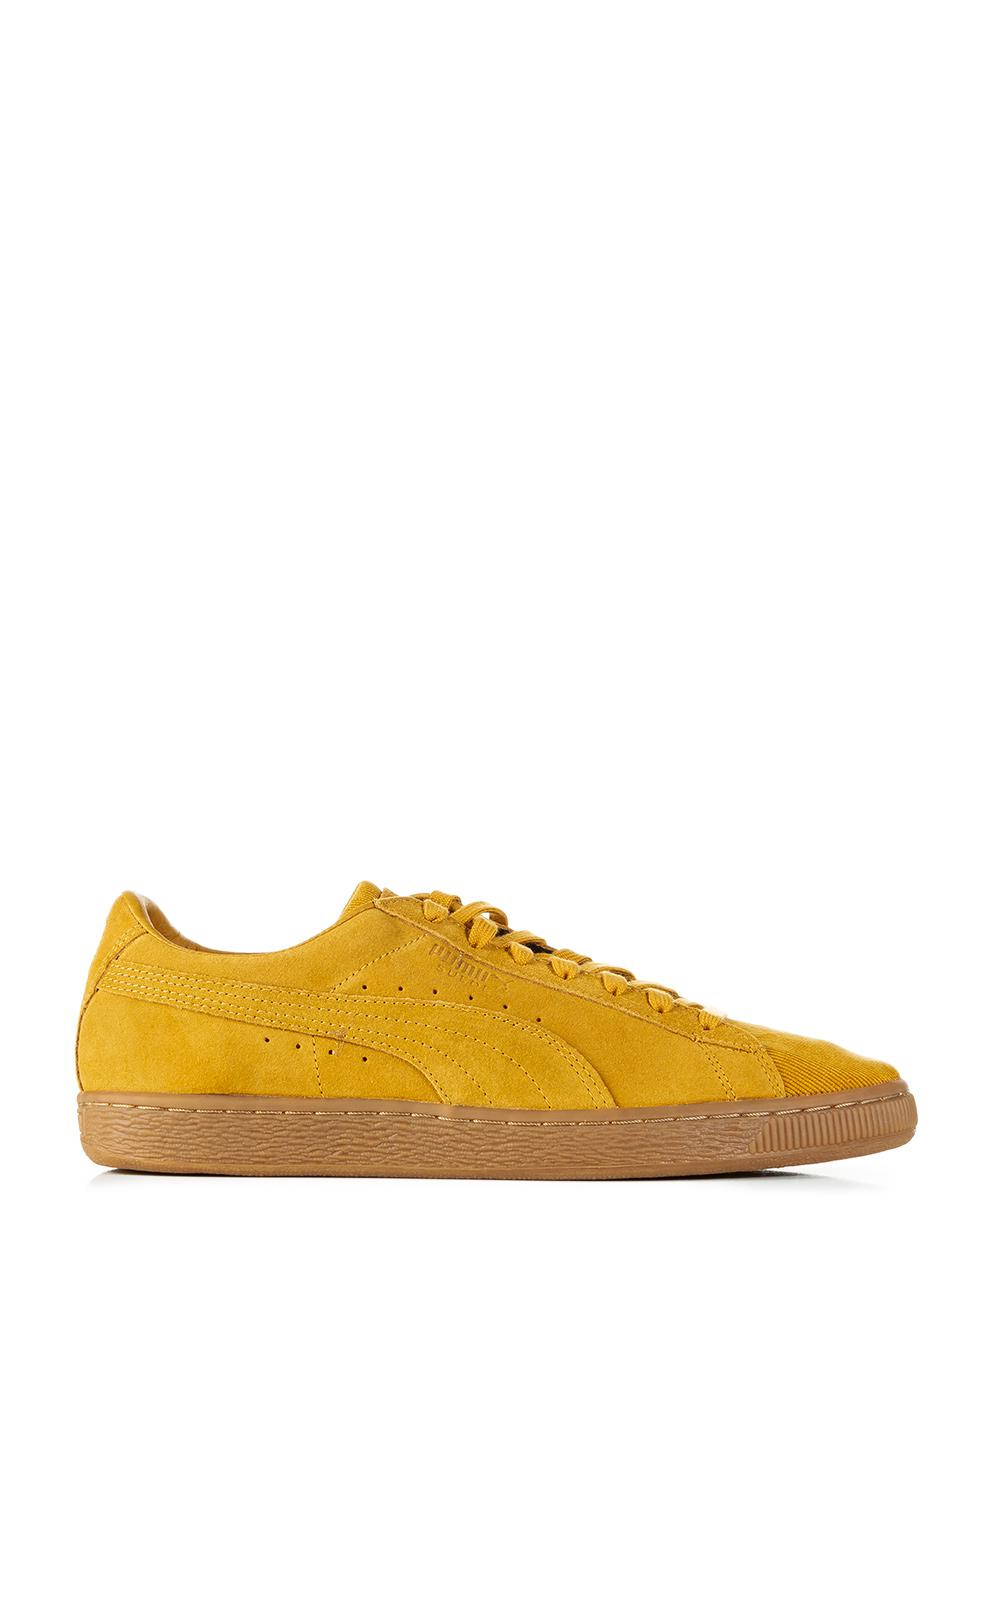 Puma Suede Classic Pincord brown in Brown for Men - Lyst 2629fa625